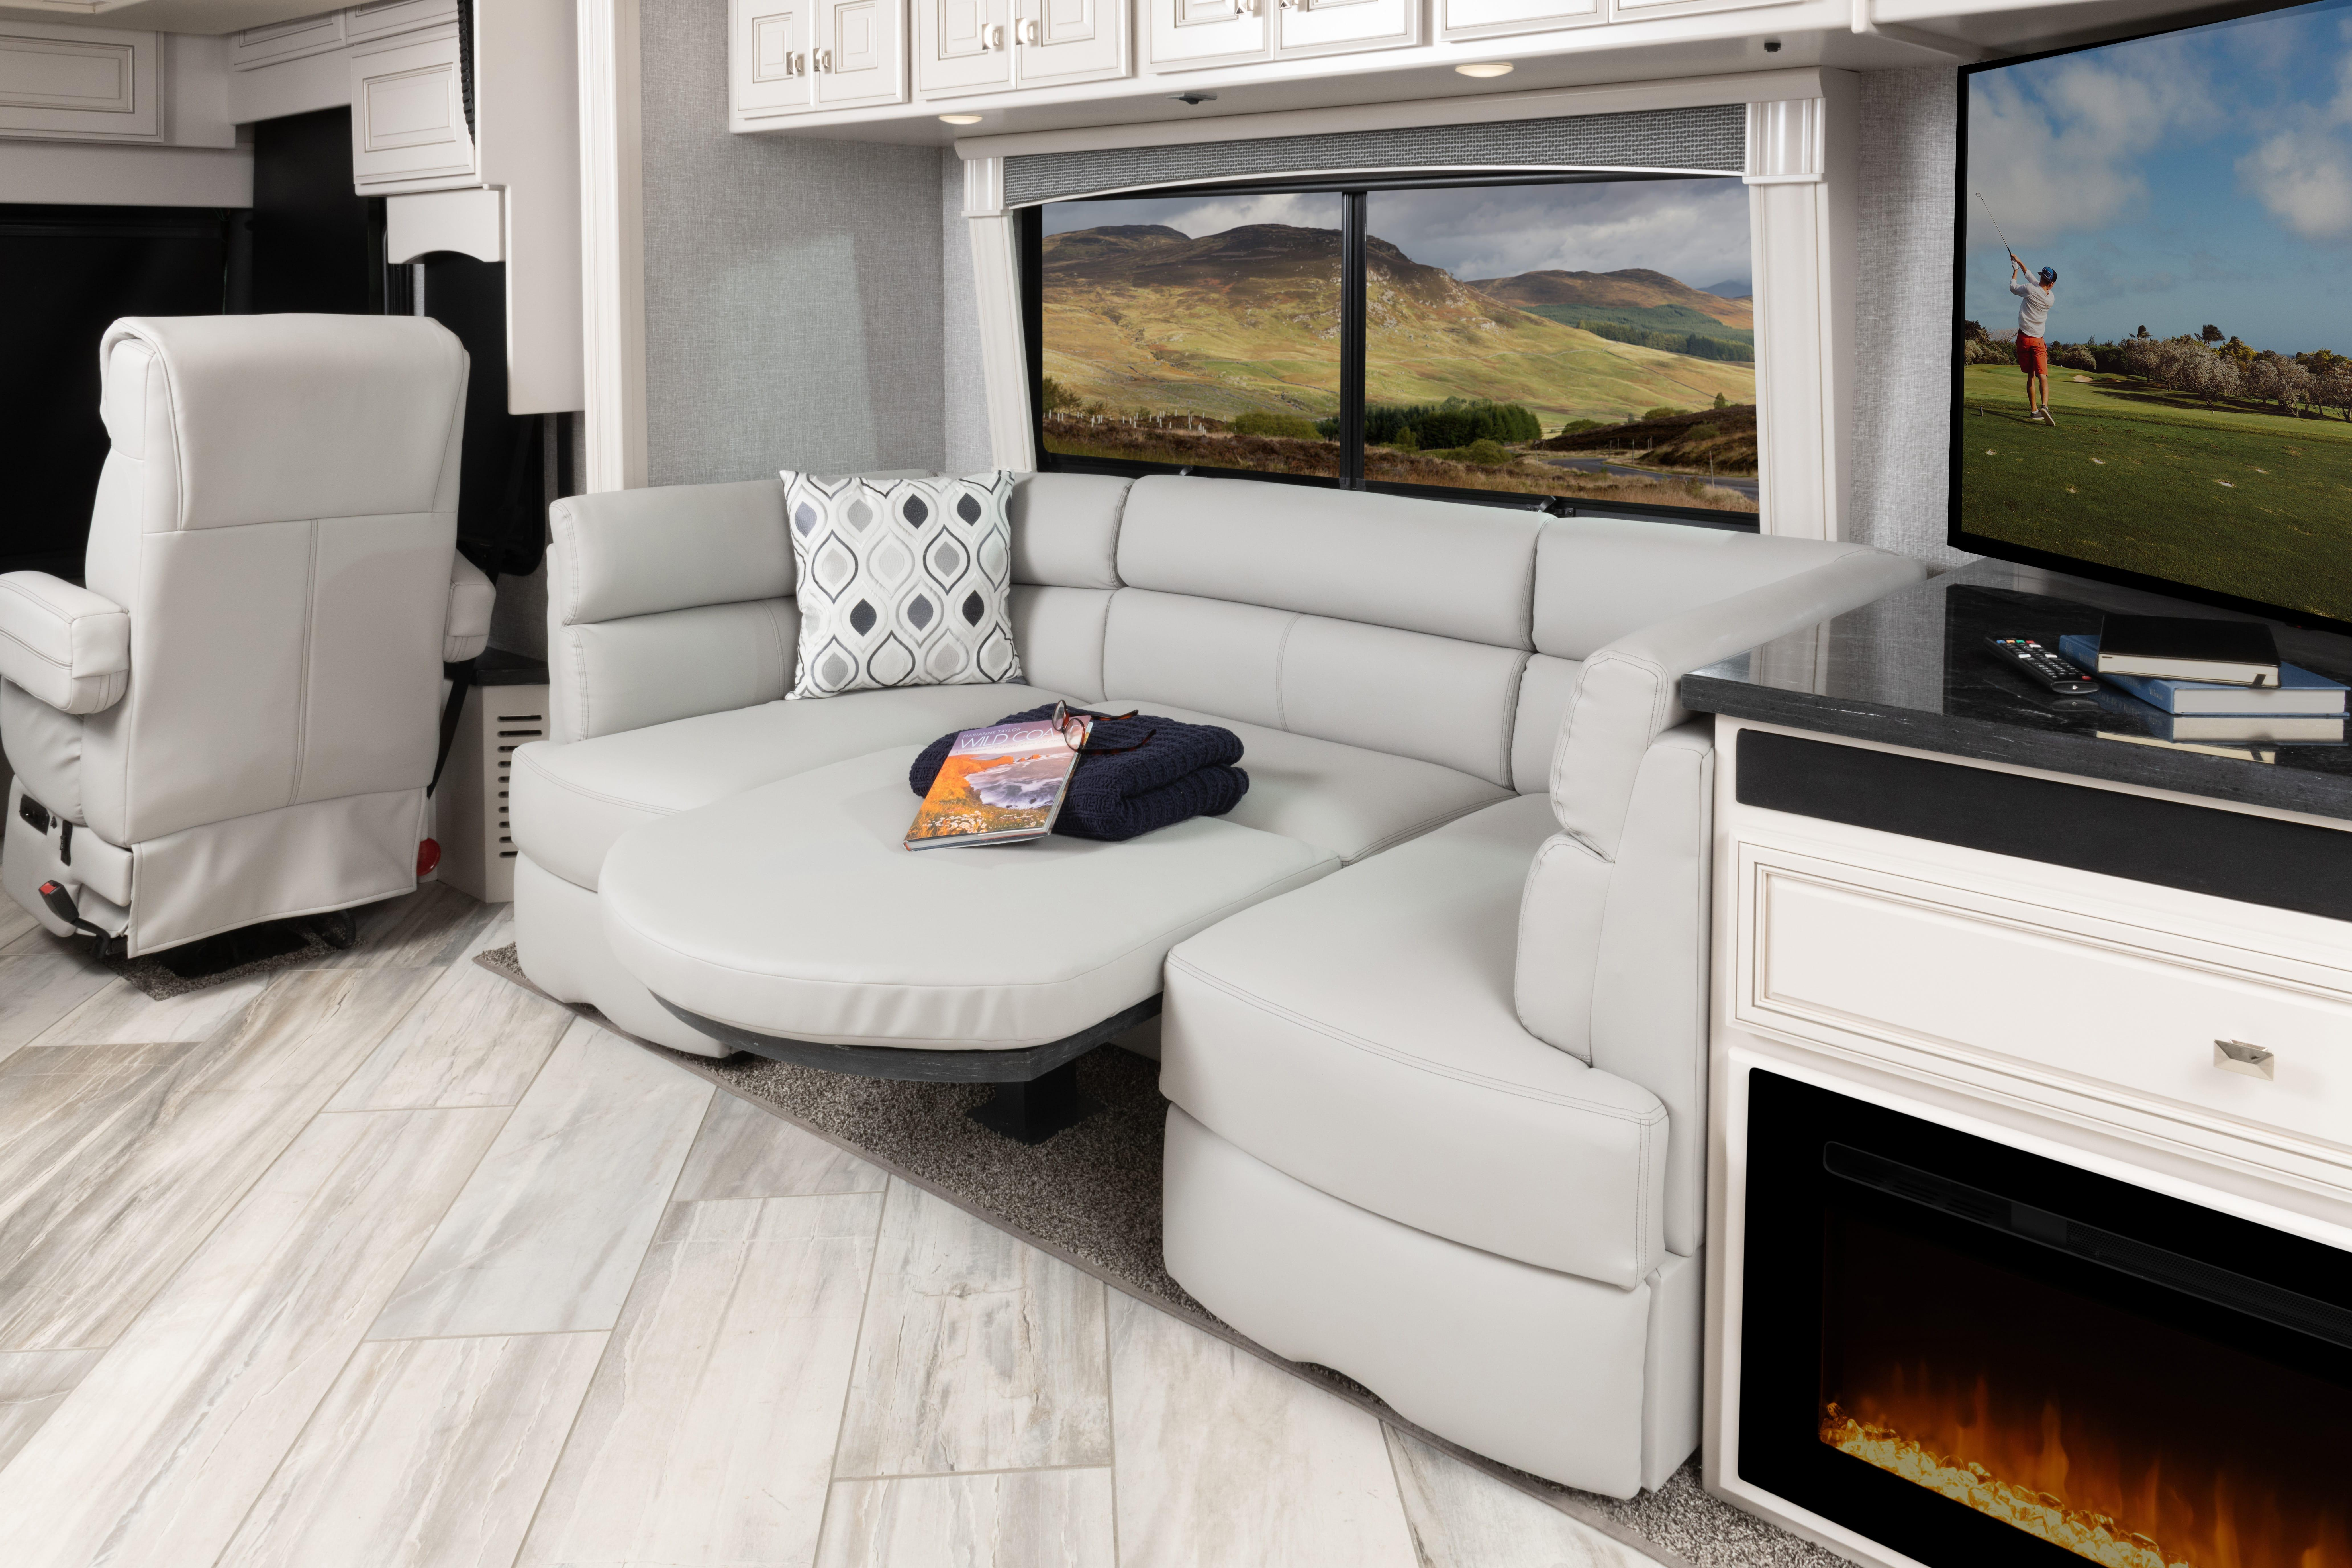 7 bed dinette Discovery LXE44 S sign WF MY22 2224